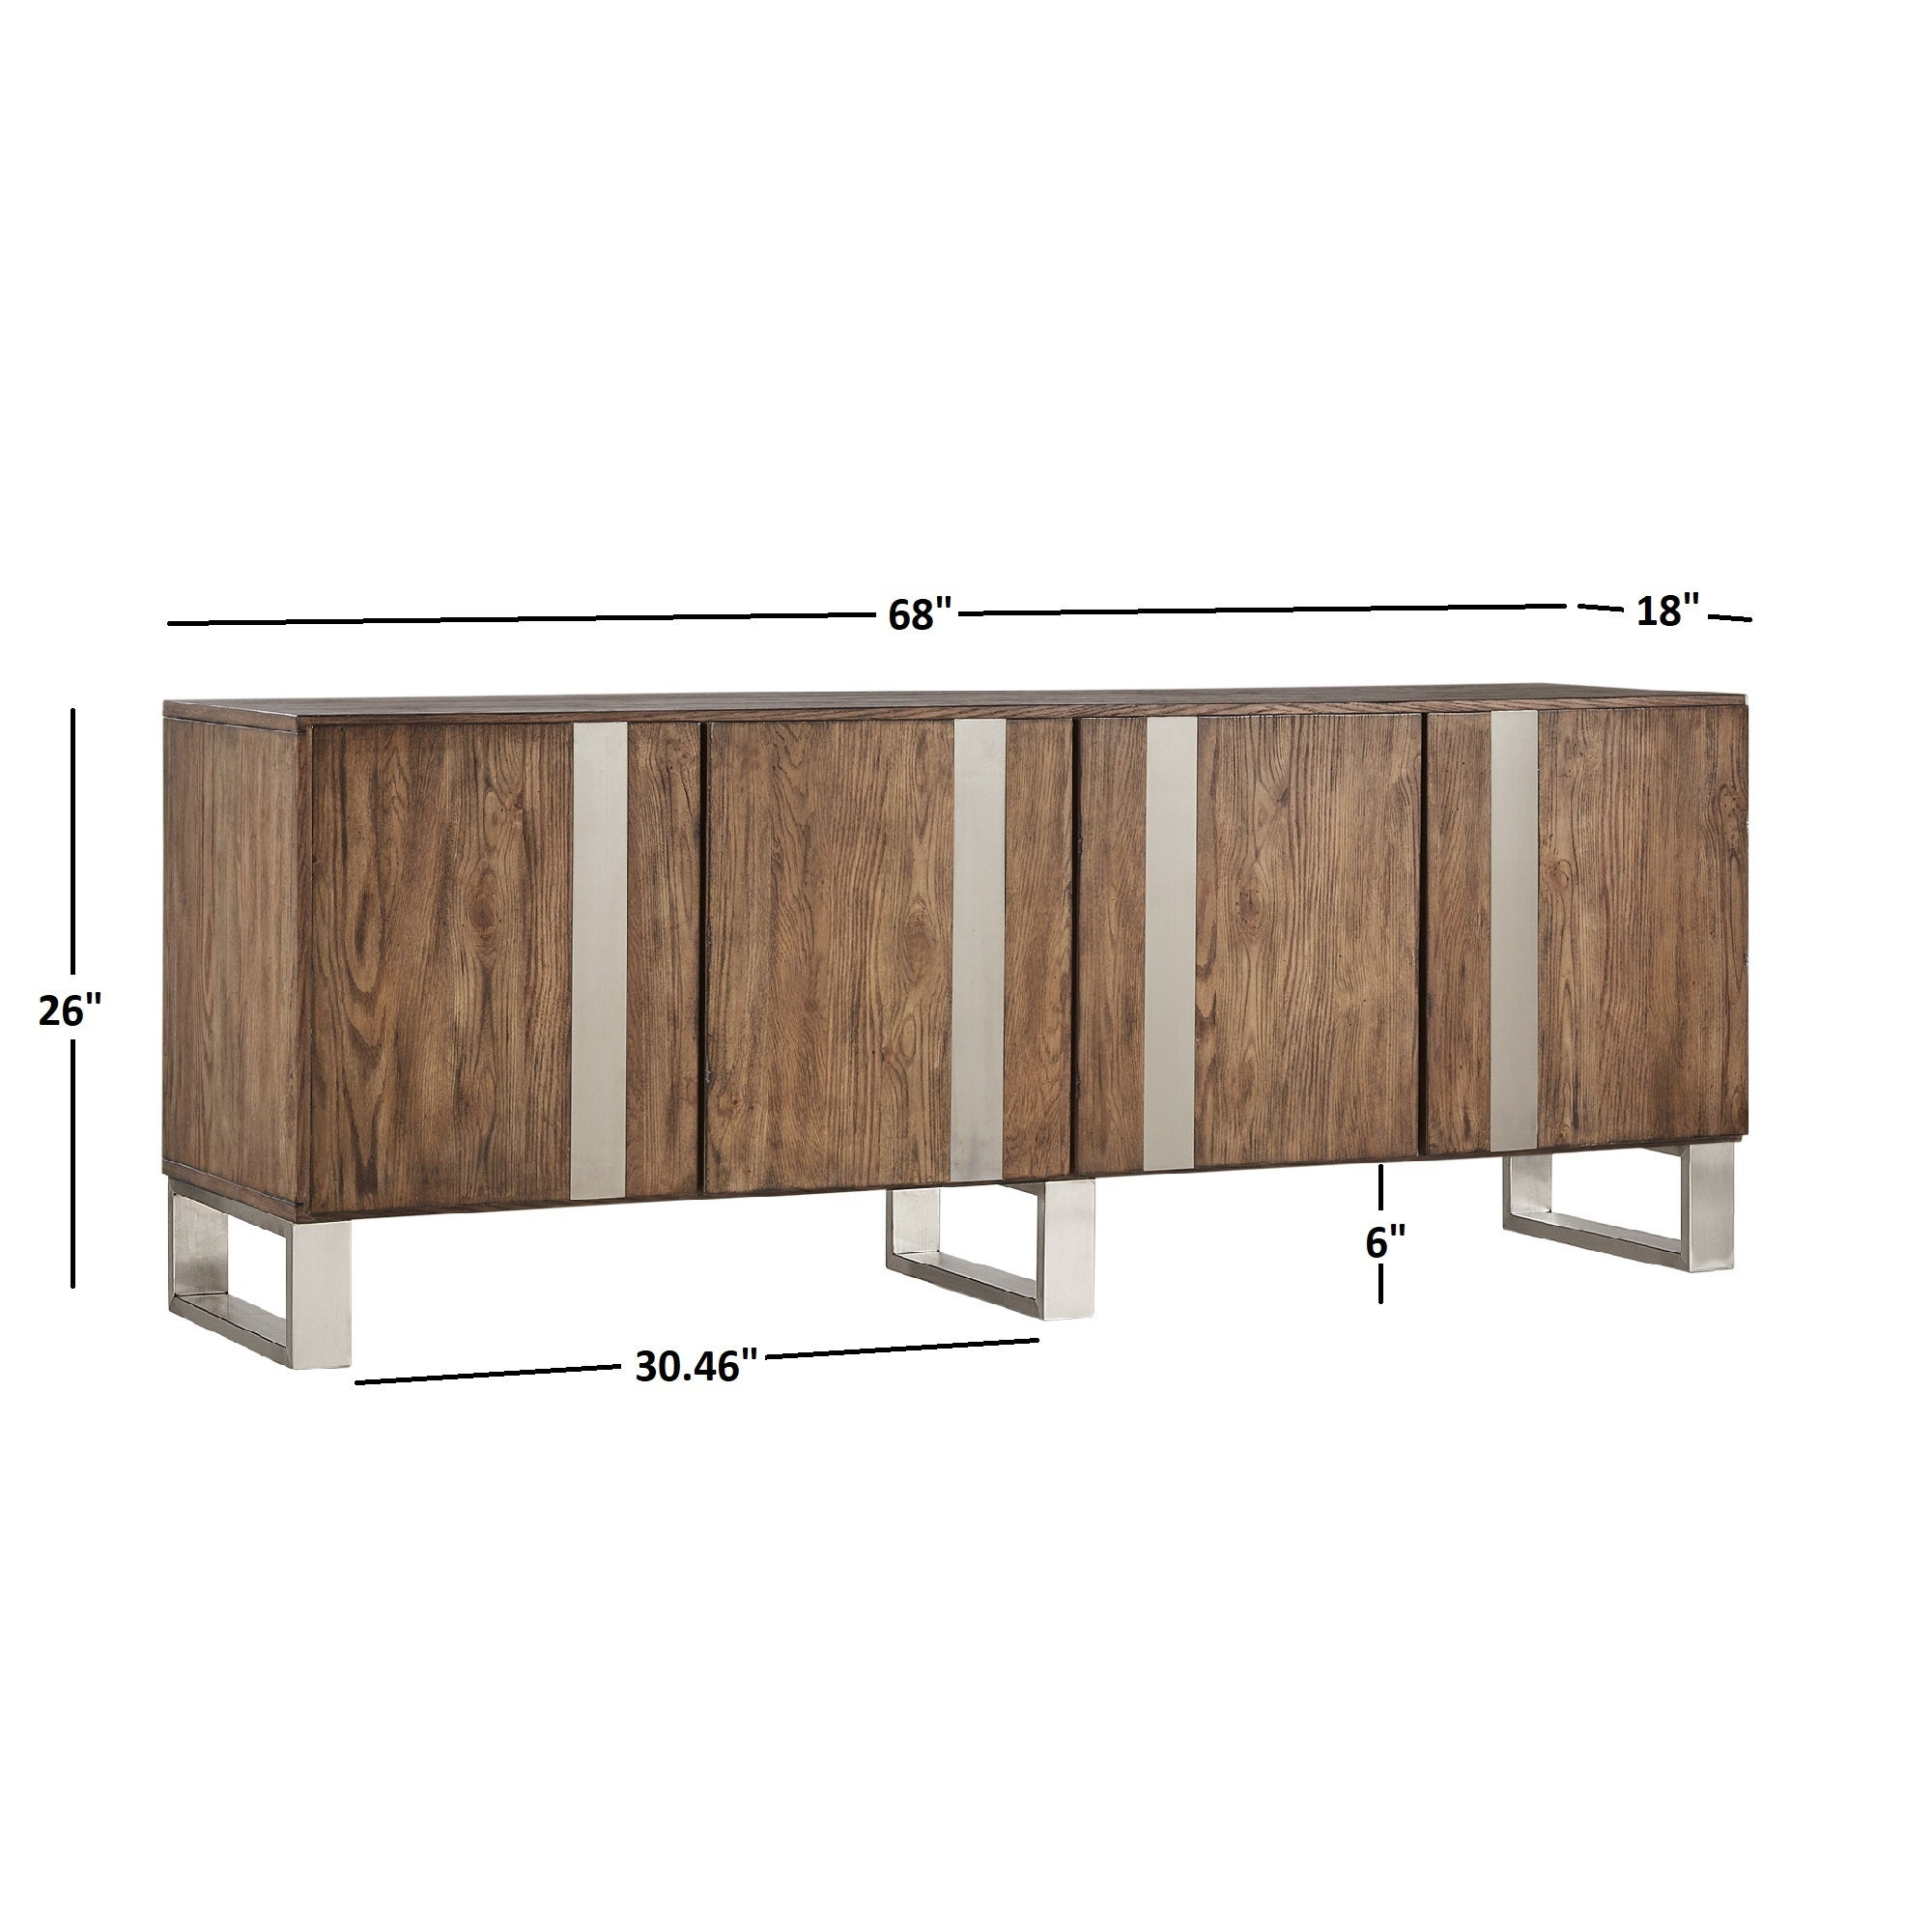 Nadine Wood And Stainless Steel Tv Console Server By Inspire Q On Free Shipping Today 23608484